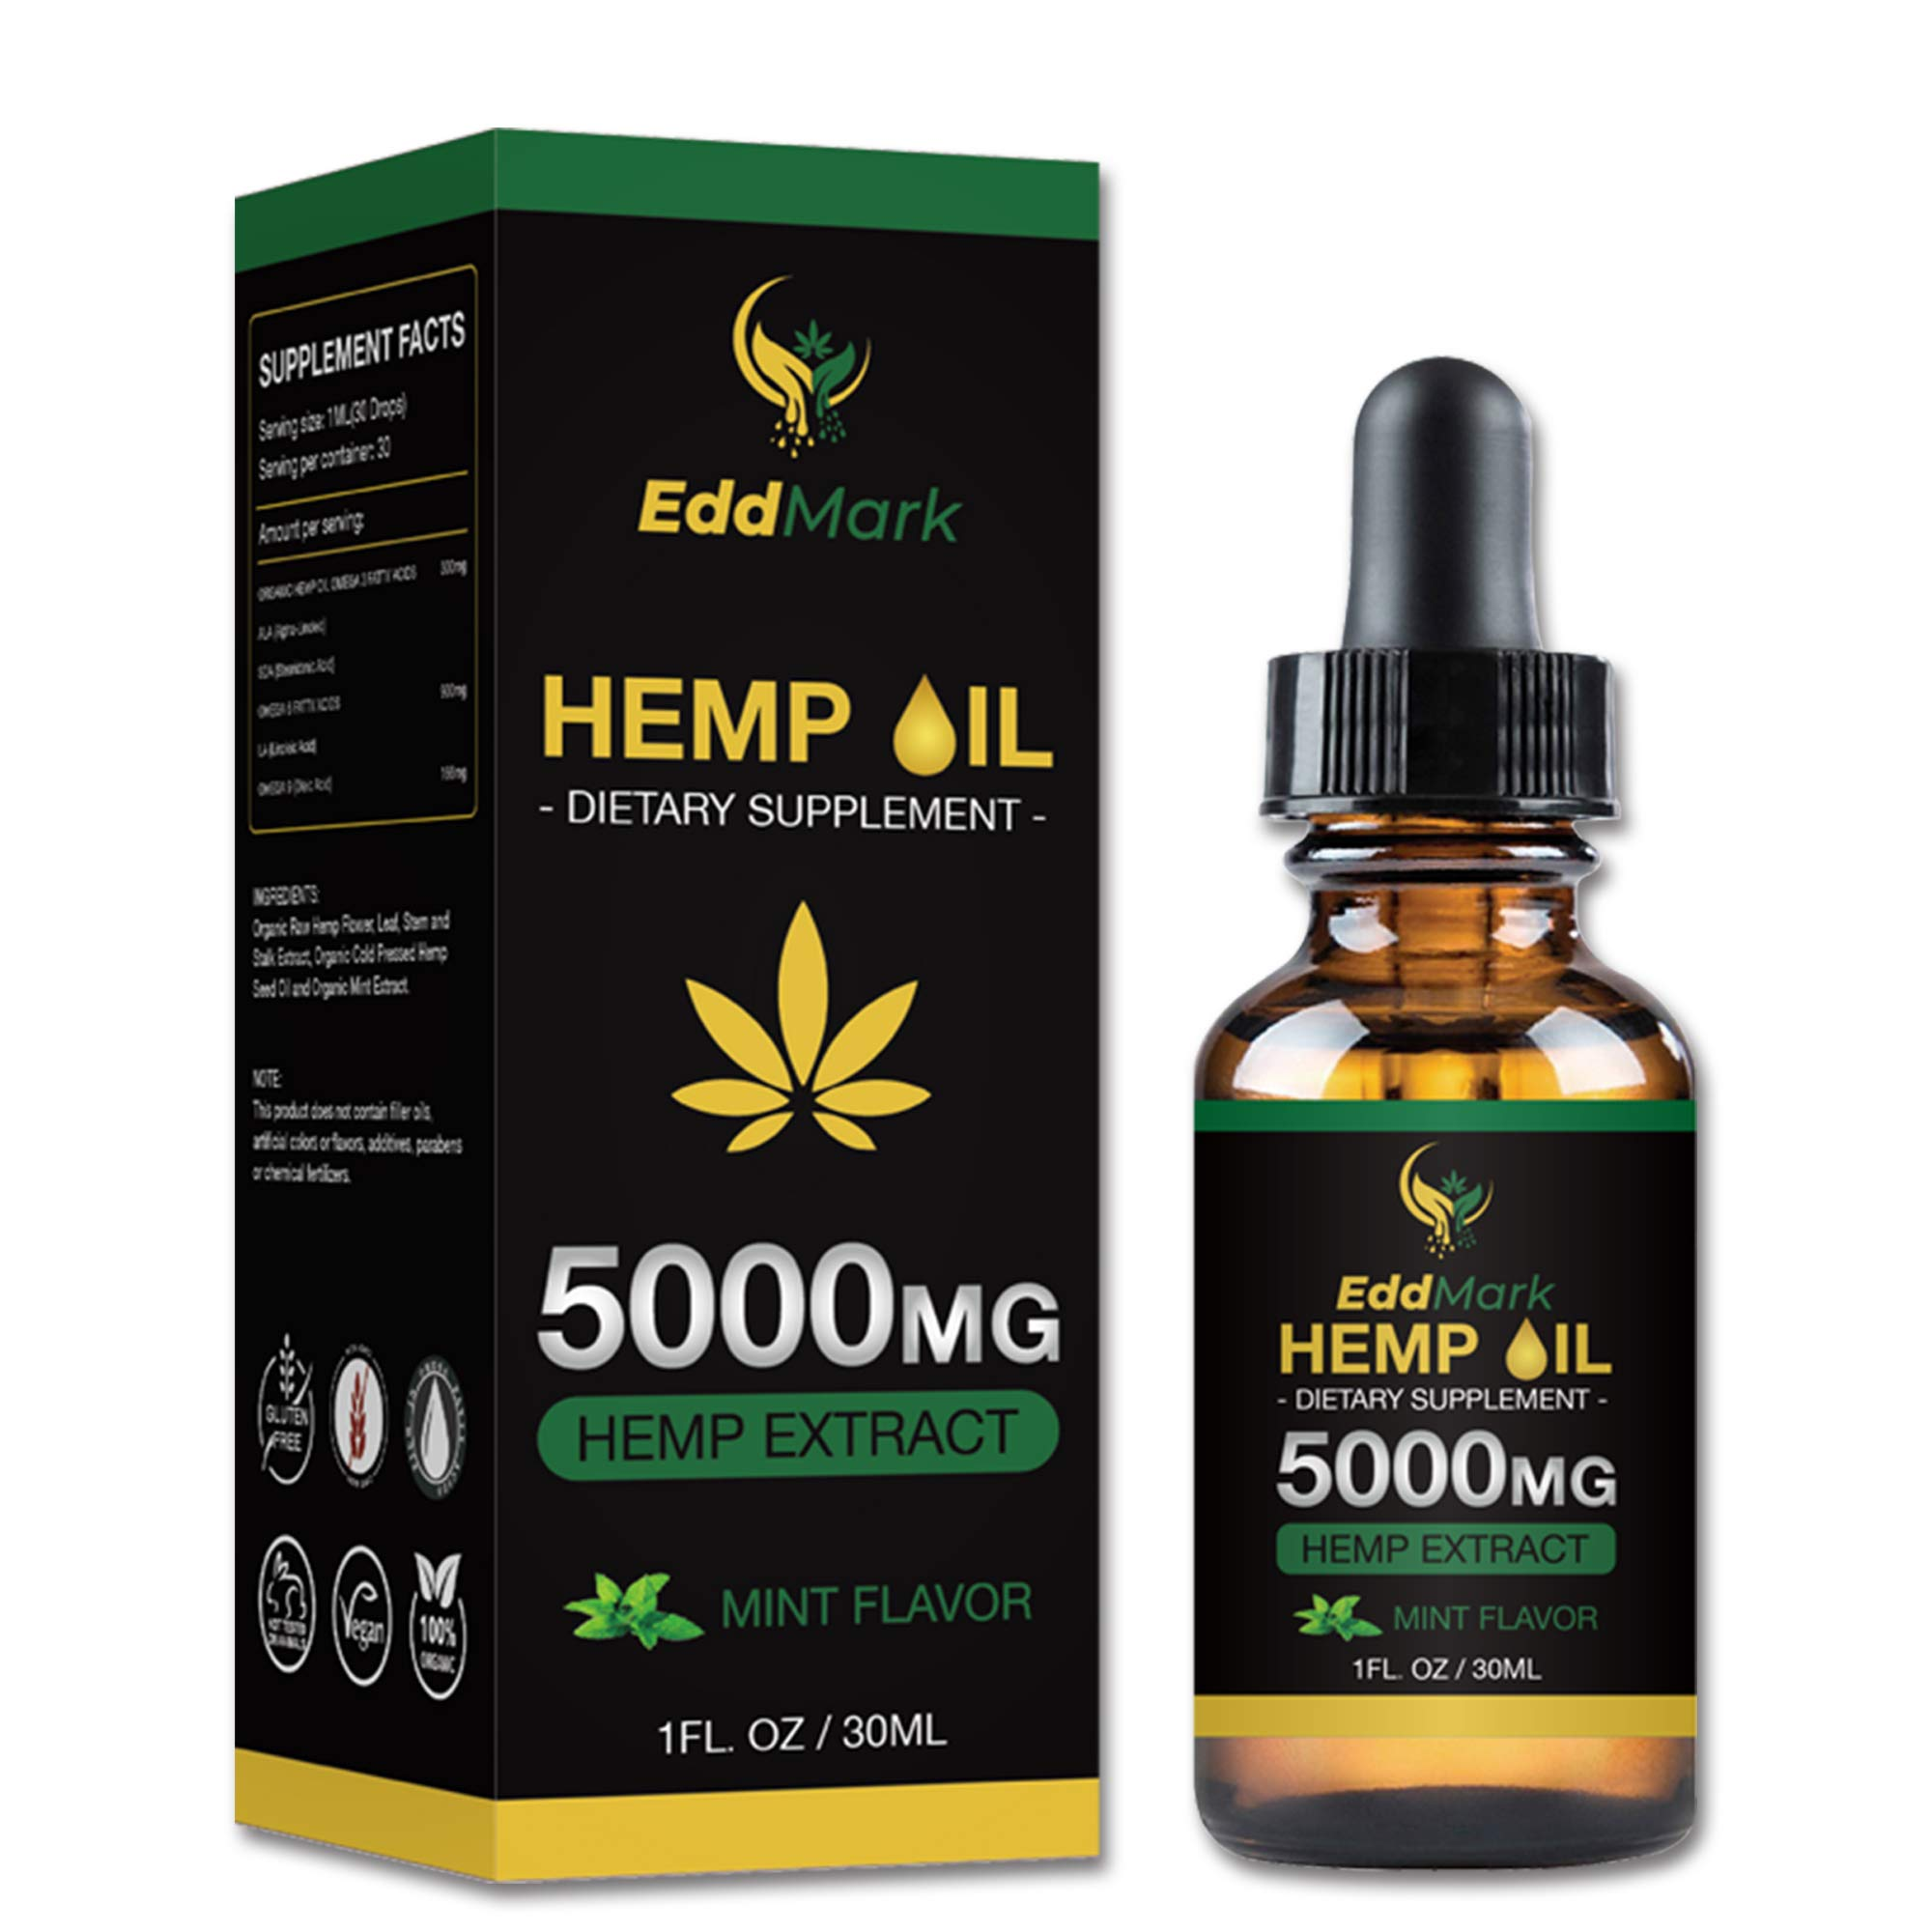 Hemp Oil Dietary Supplement for Pain Relief and Anxiety - 5000mg Hemp Oil Extract with Mint Flavor - 30Ml All-Natural Organic Hemp Drops - Can Improve Sleep, Skin - Anti-Inflammatory Properties by EddMark